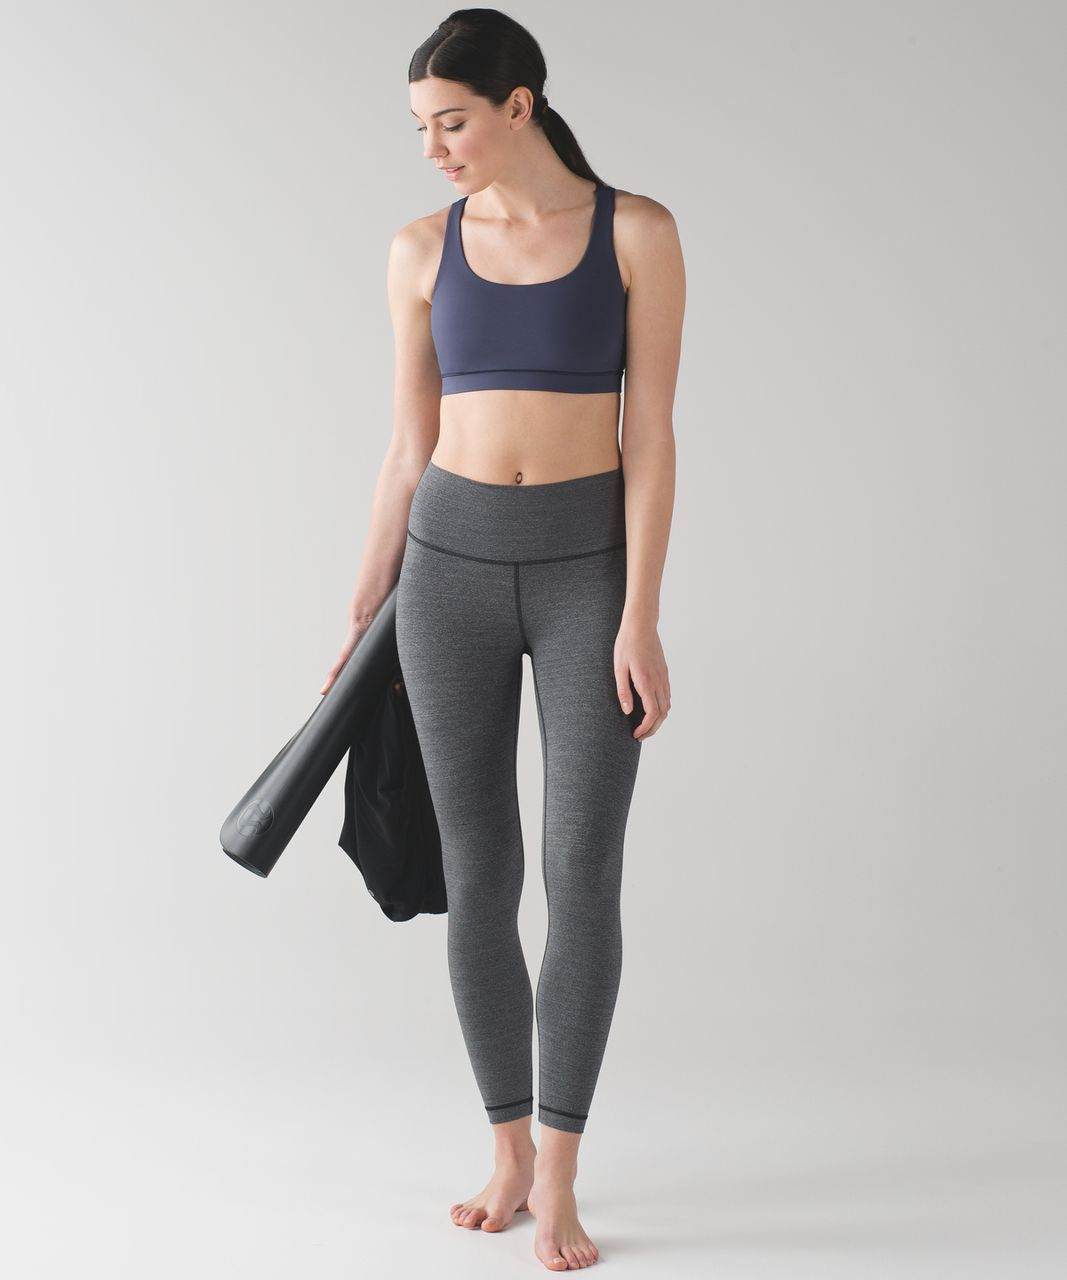 Lululemon Energy Bra - Cadet Blue